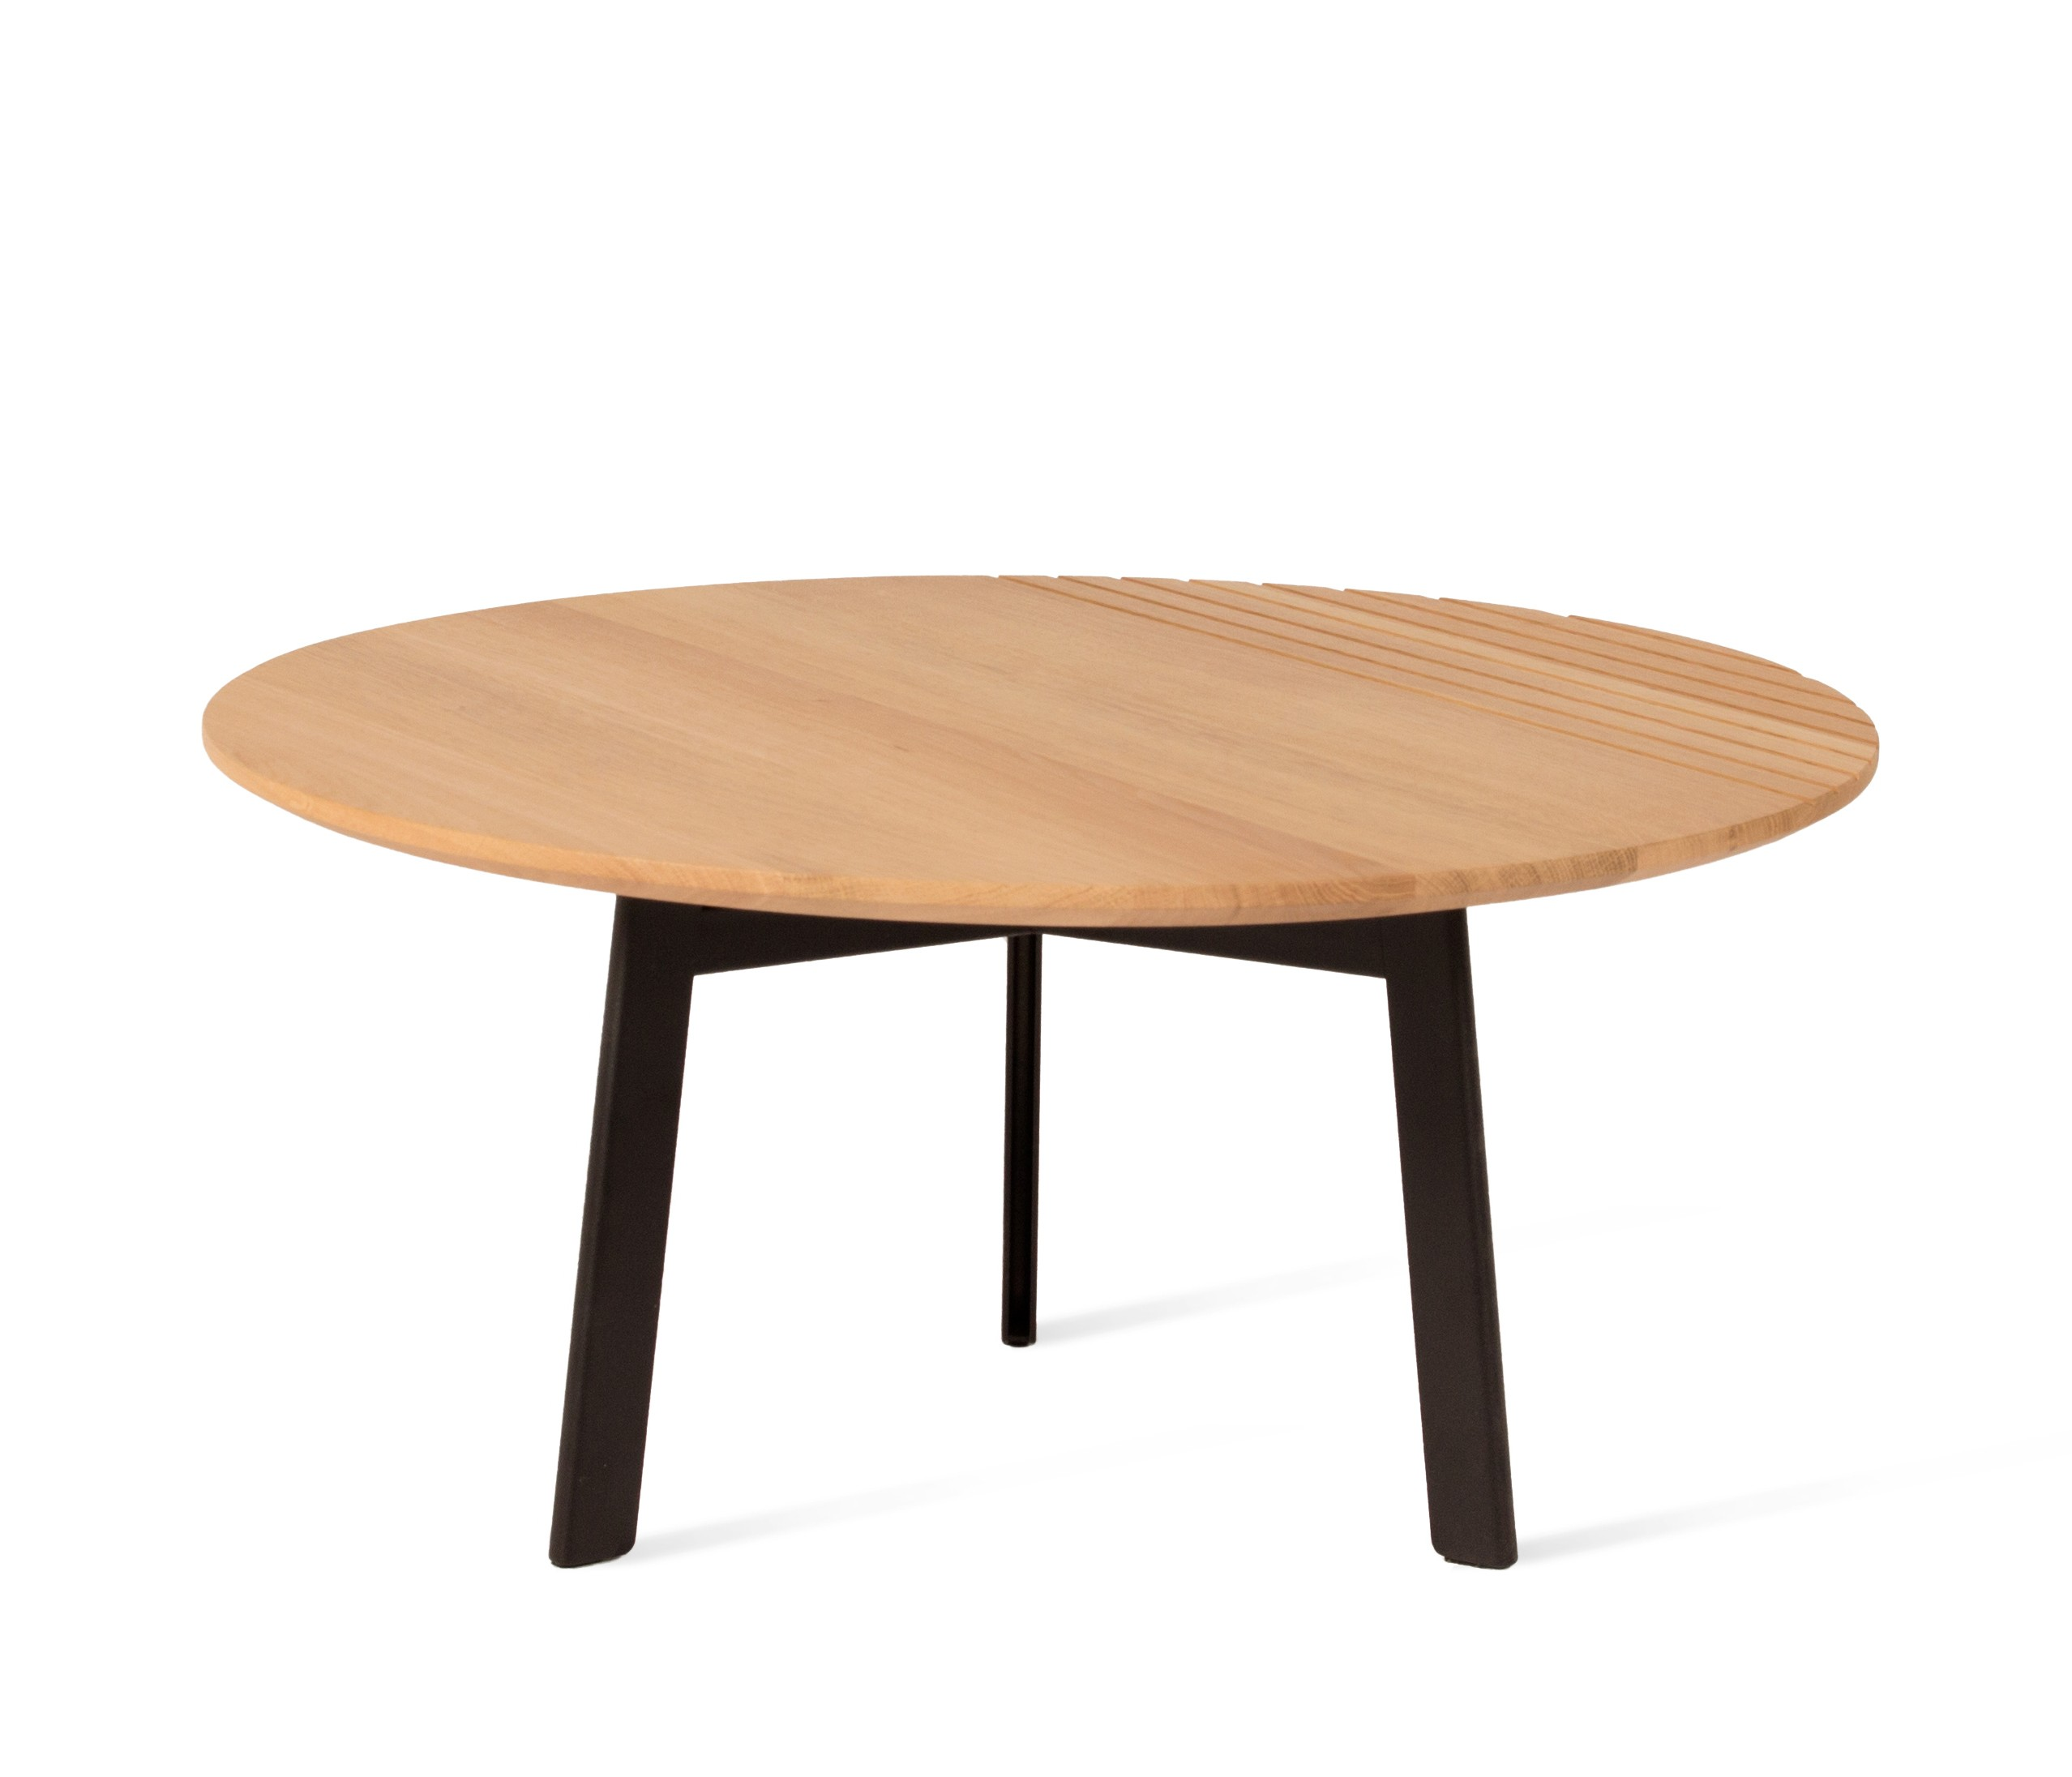 table basse groove oak naturel de vincent sheppard 2 tailles. Black Bedroom Furniture Sets. Home Design Ideas